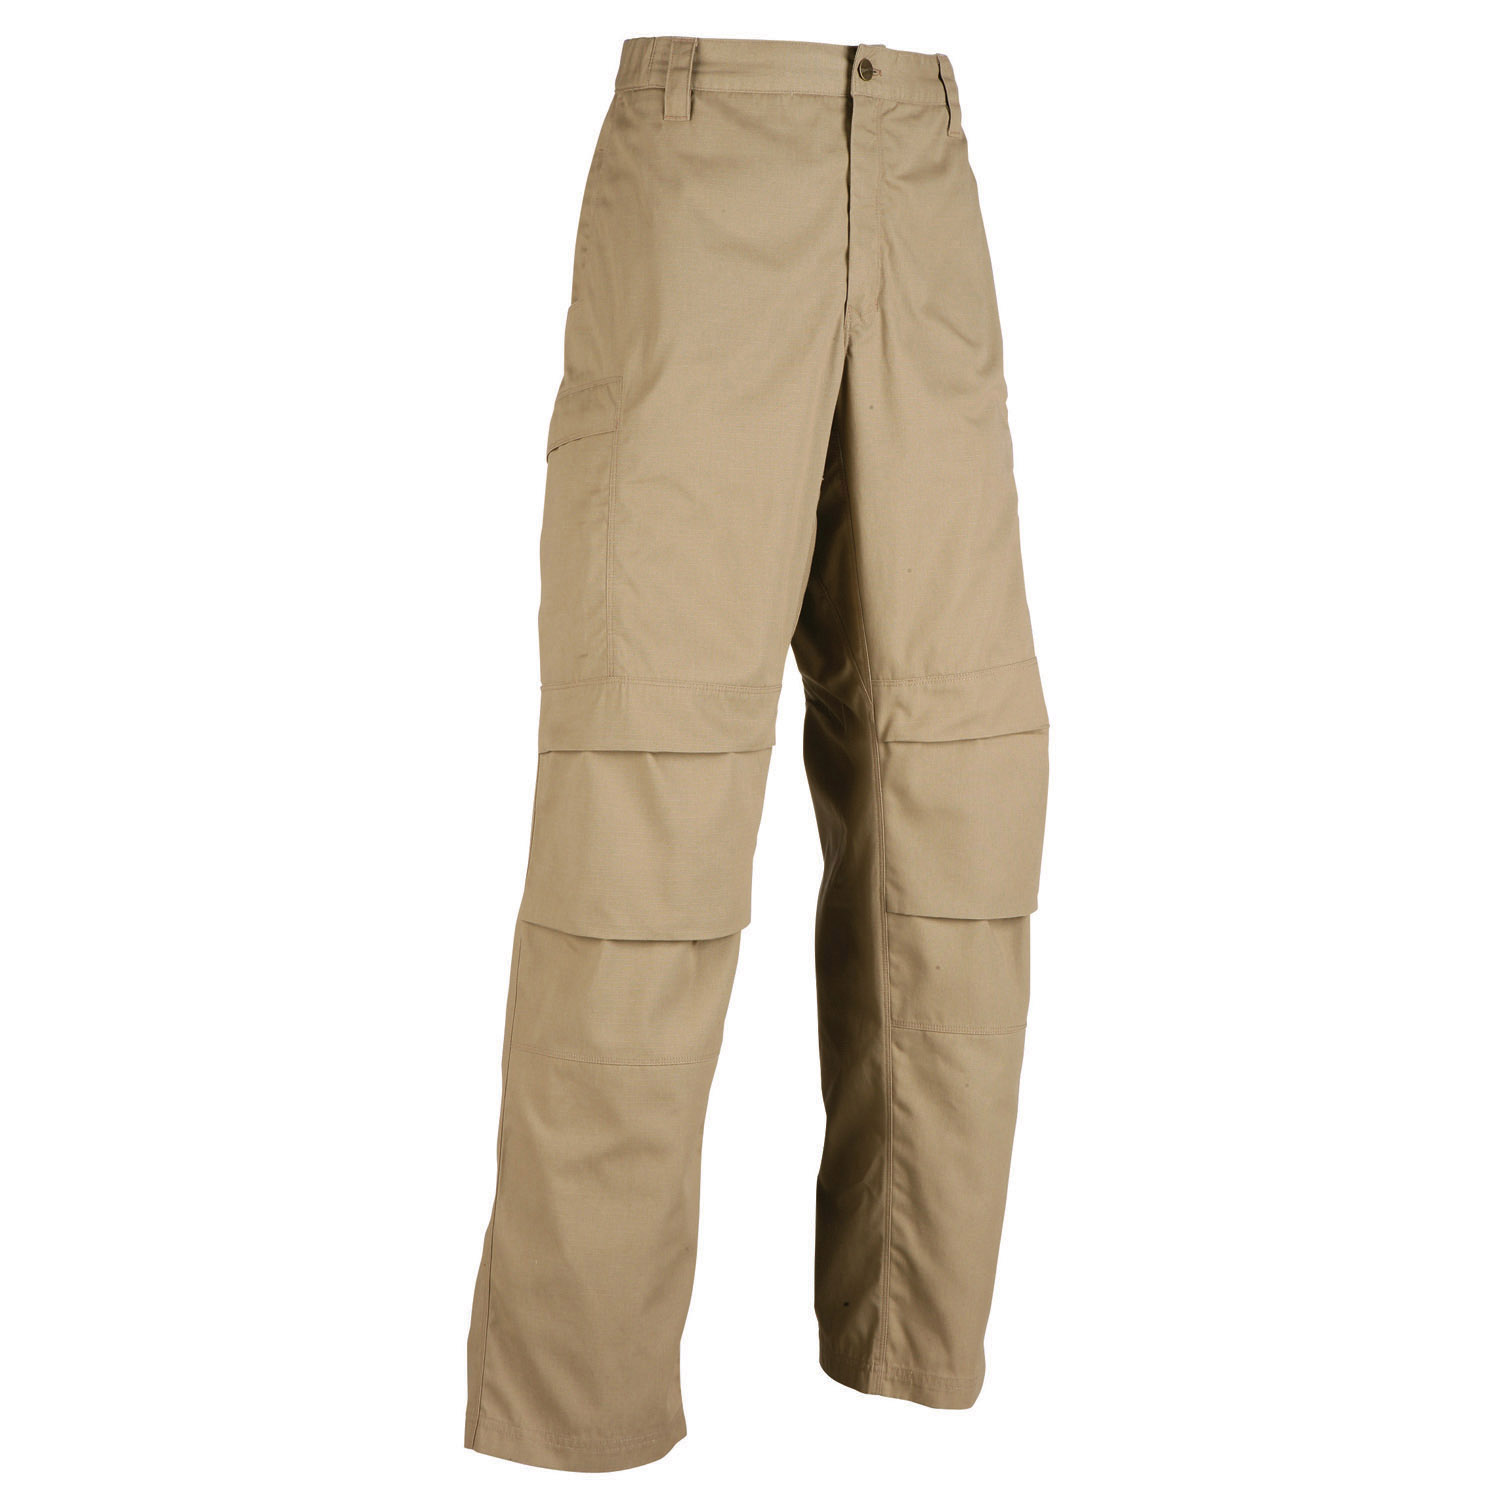 Vertx Women's Phantom Light Pant